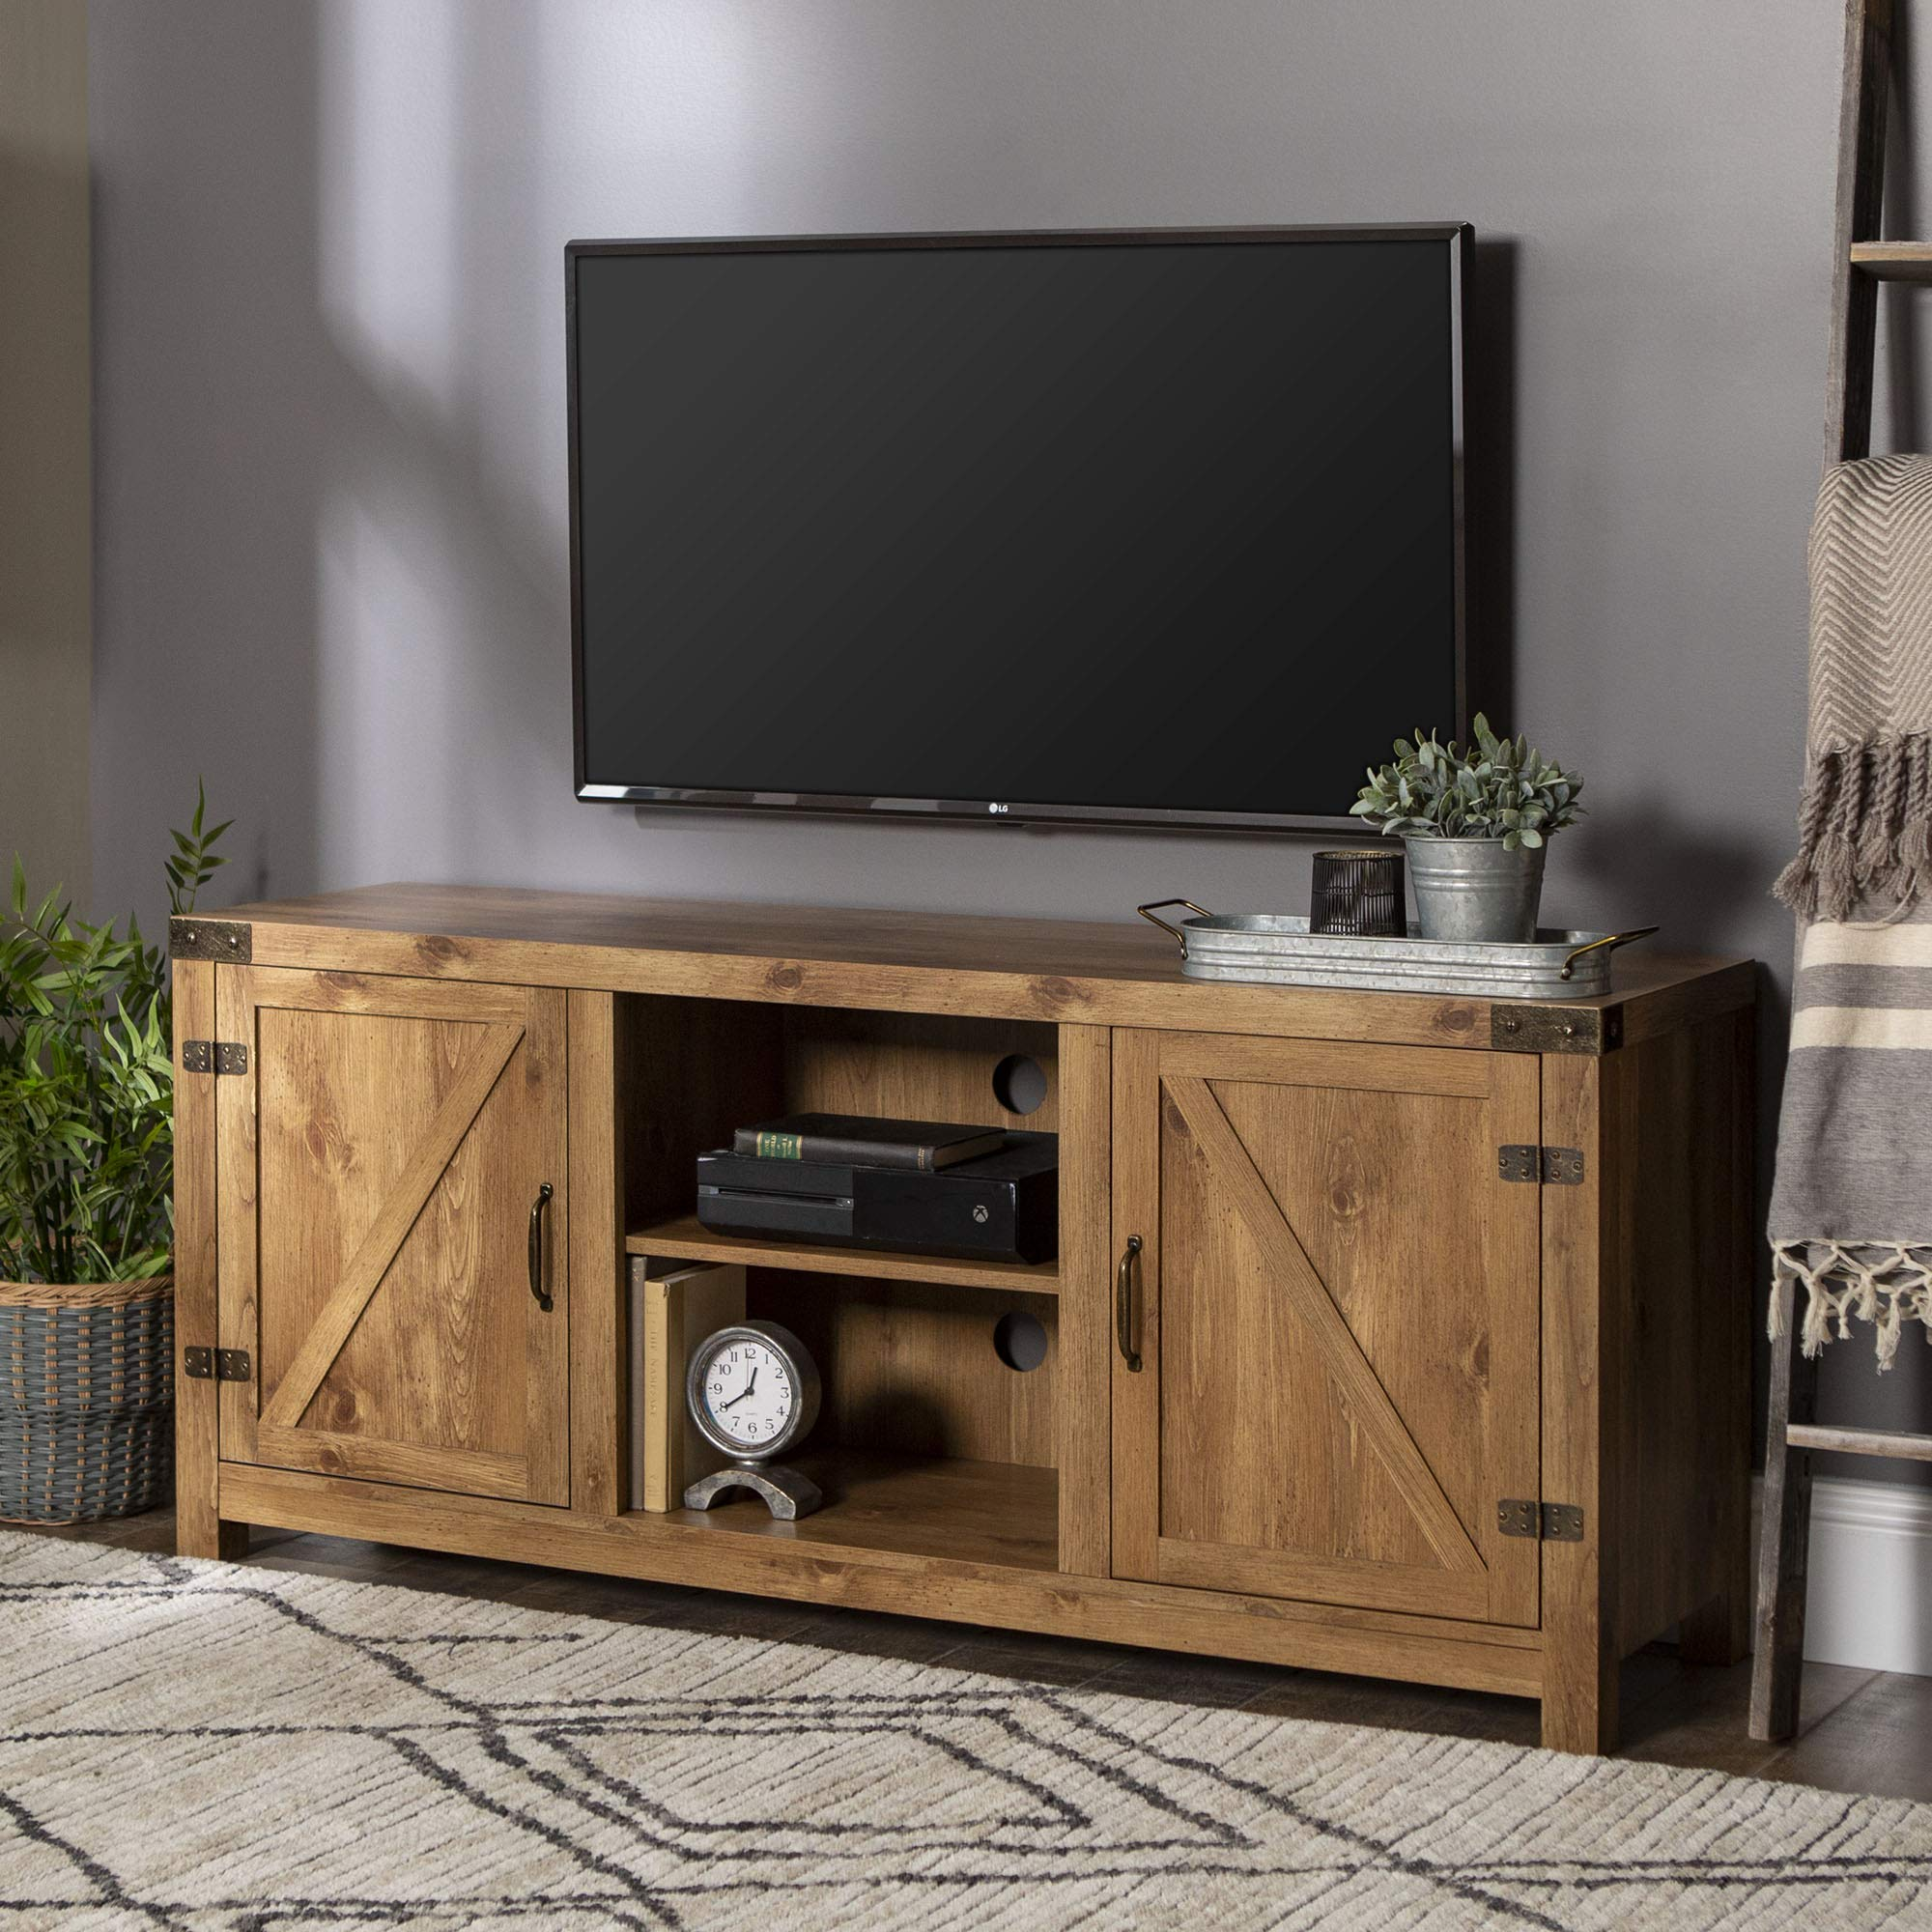 WE Furniture Barn Door TV Stand One Size Barnwood by WE Furniture